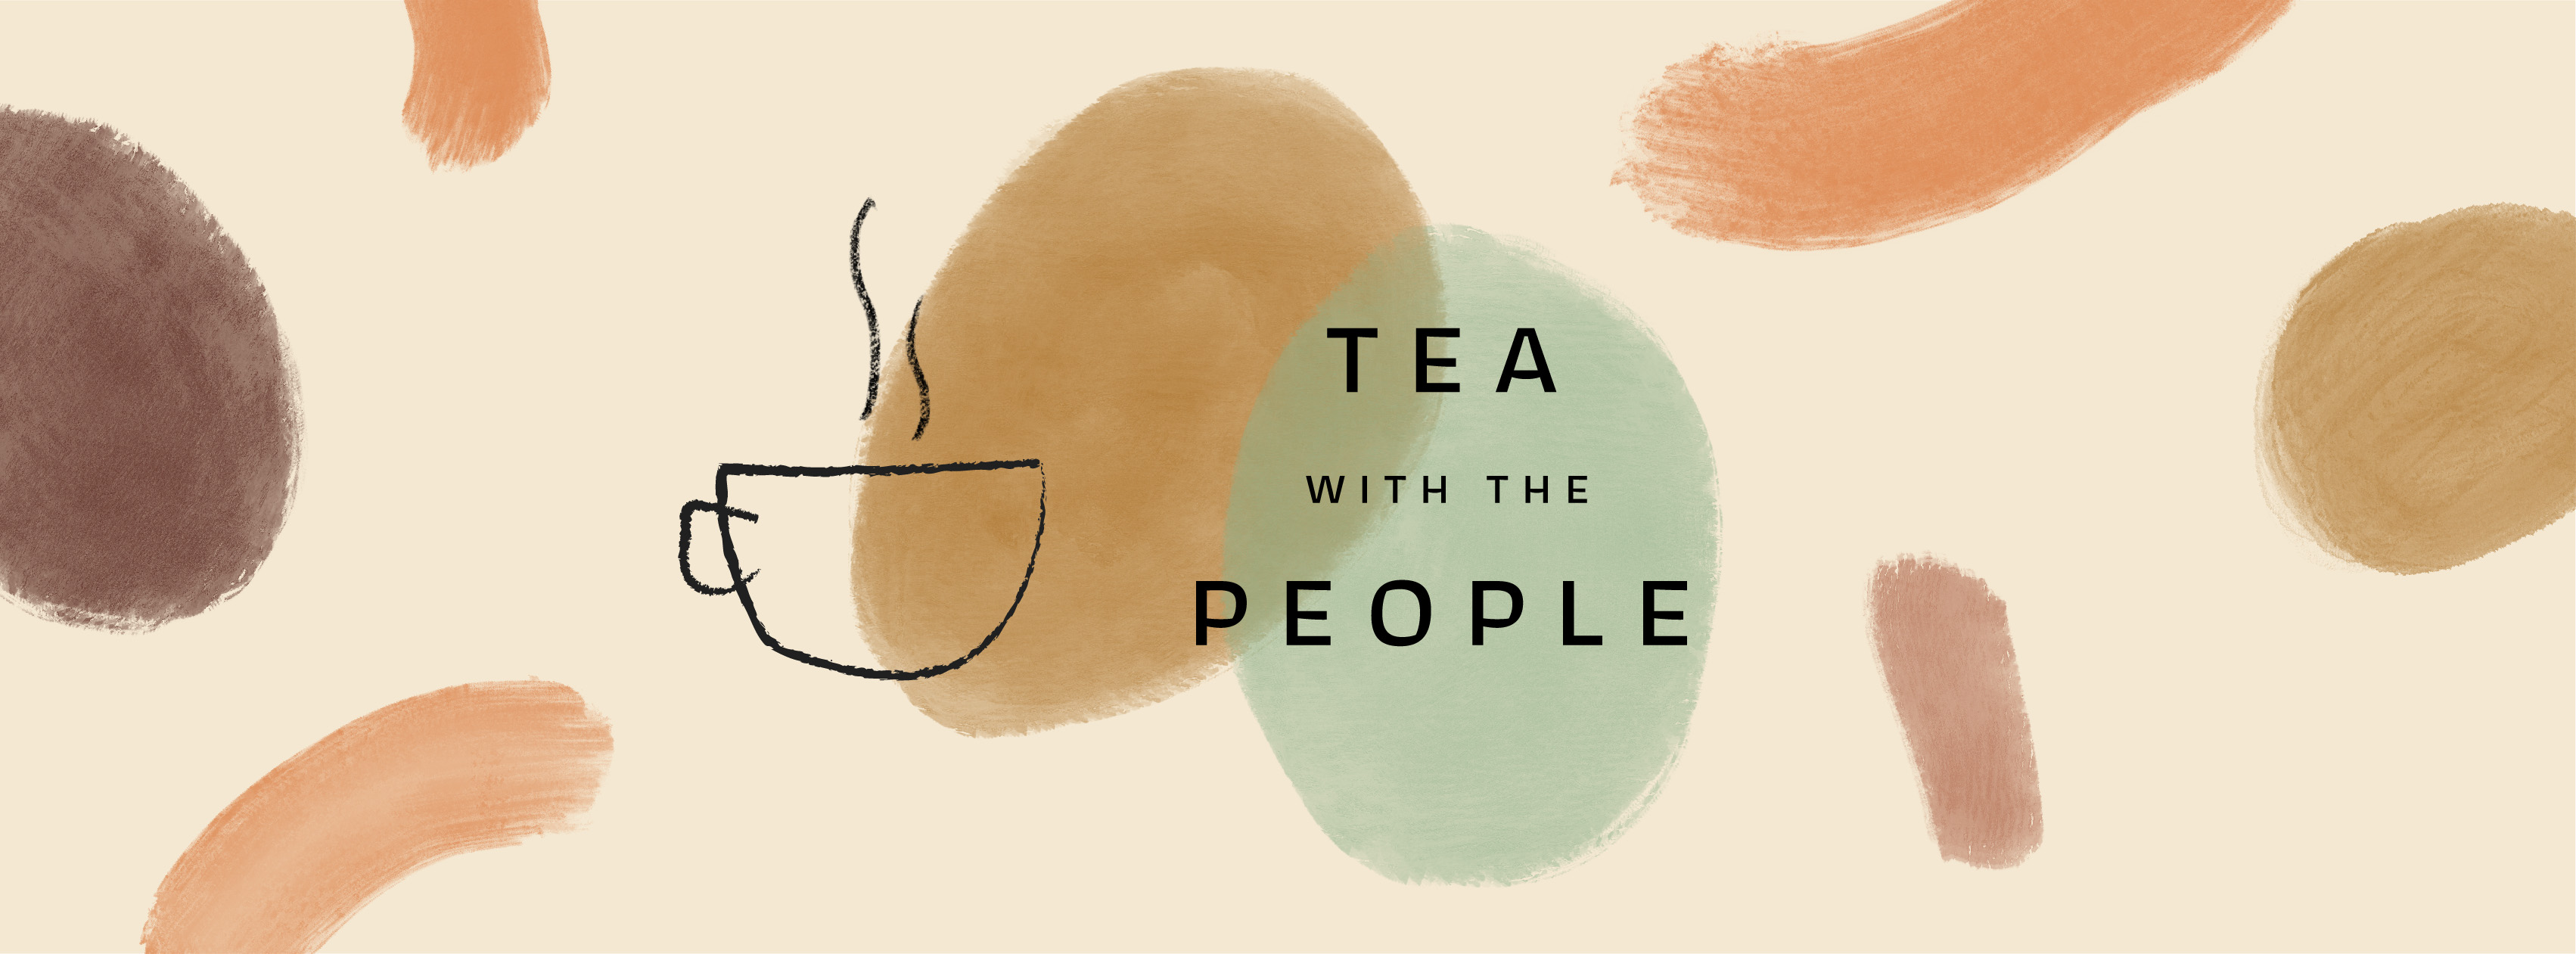 Tea with the People